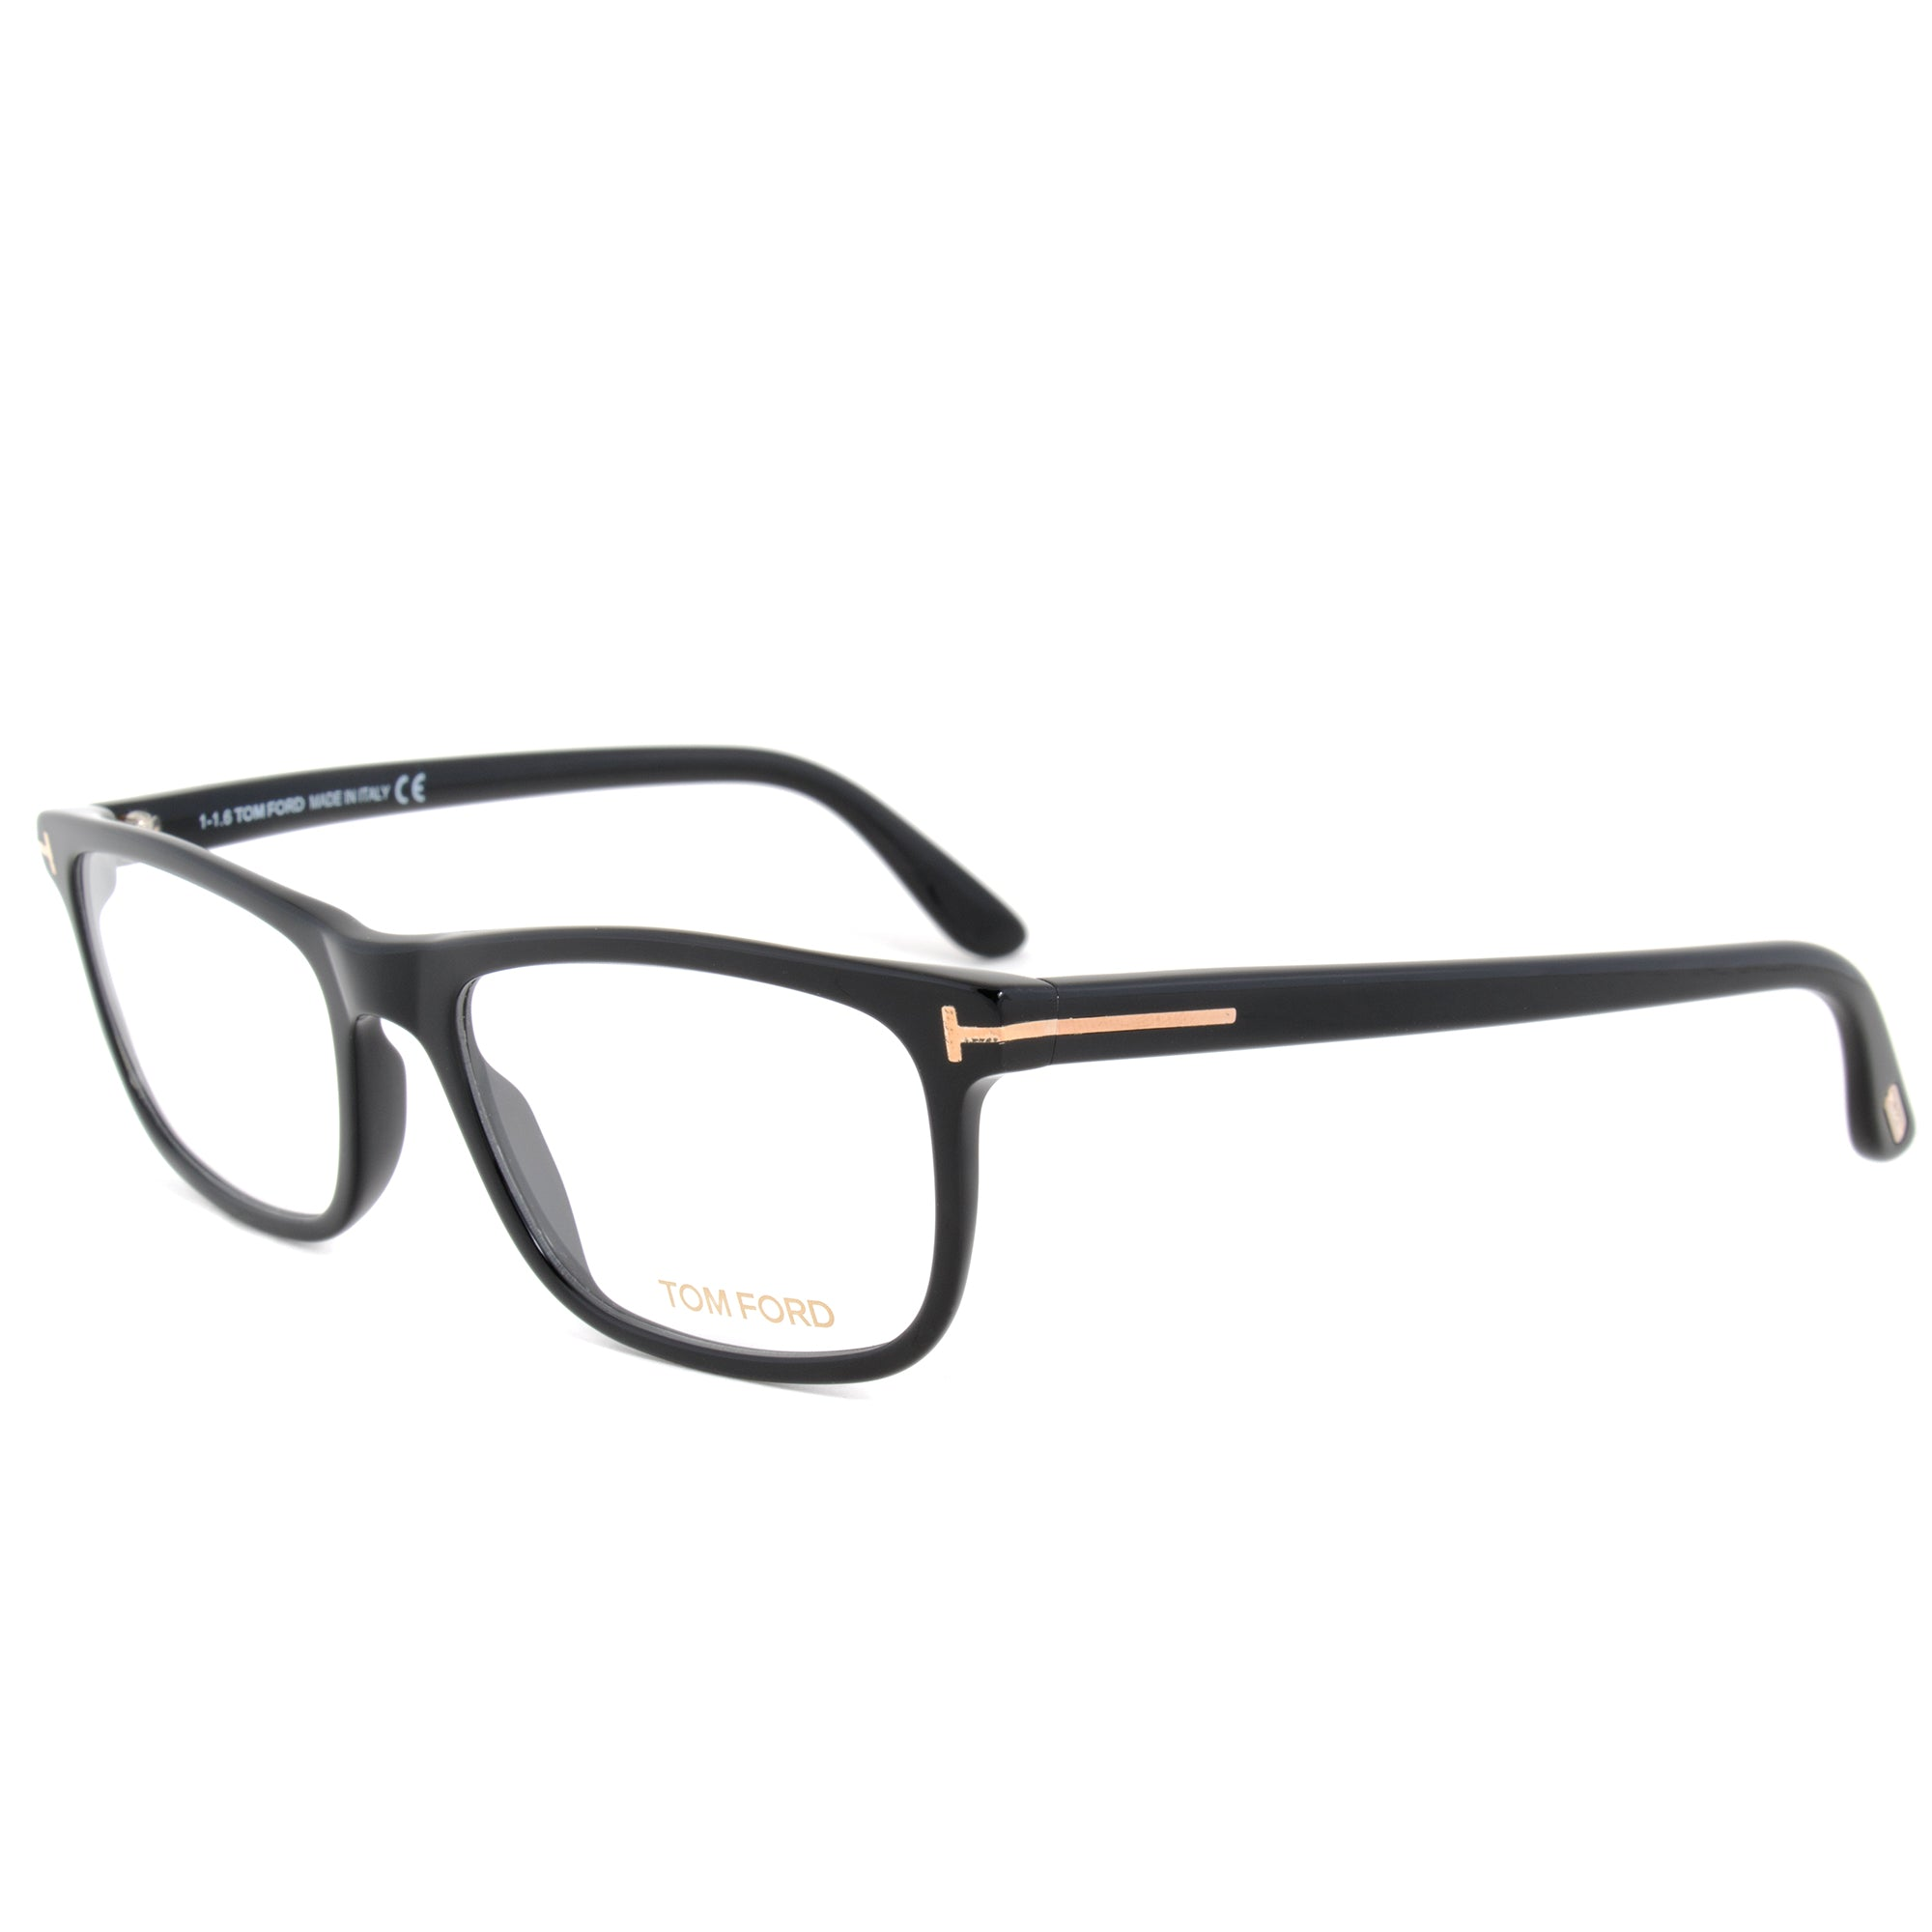 Tom Ford Eyeglasses Frame TF5356 001 | Black Frame | 53mm